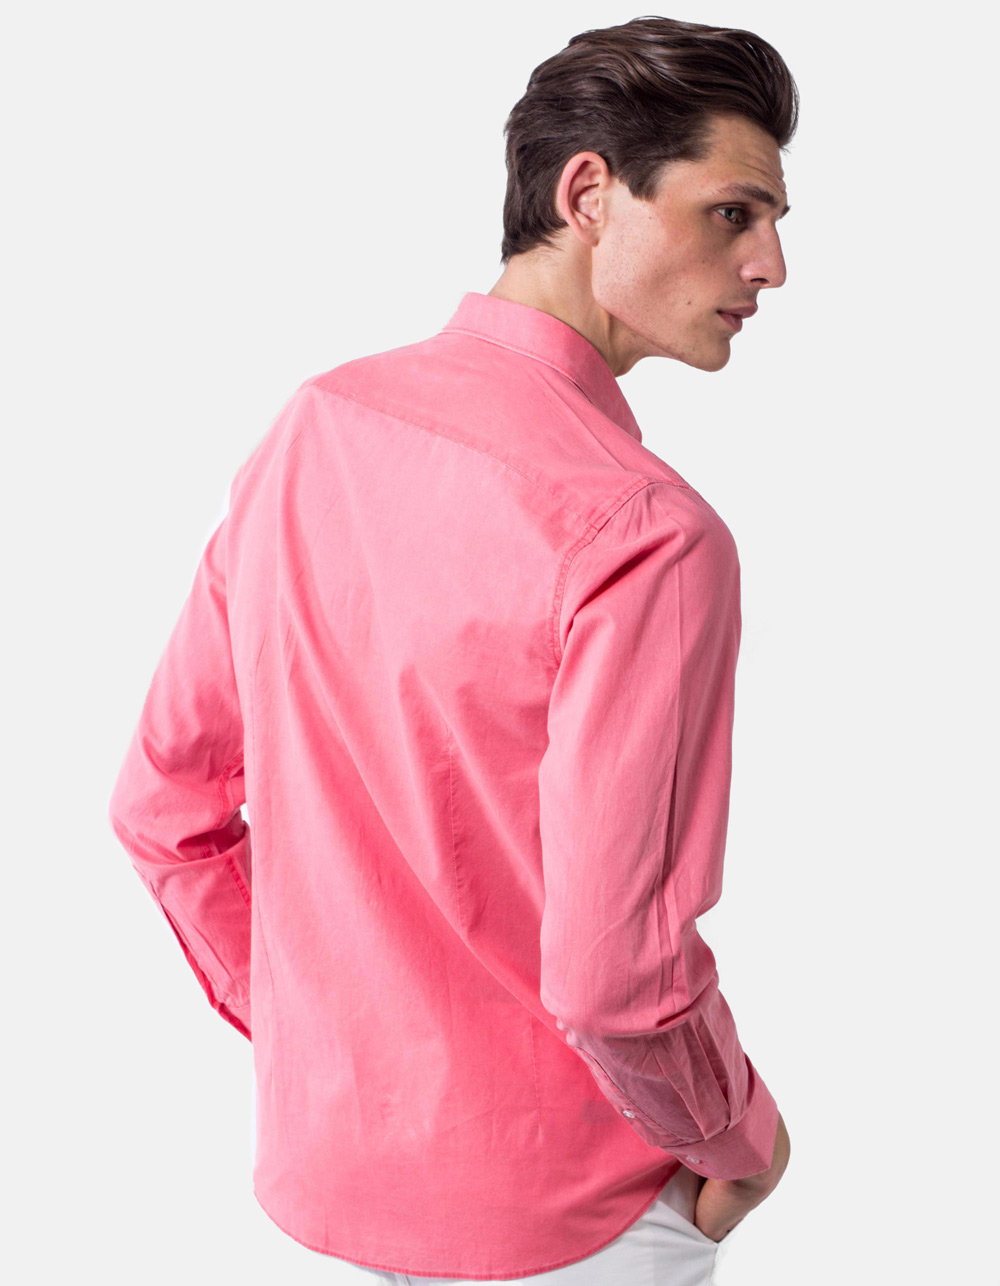 Coral washed shirt - Backside